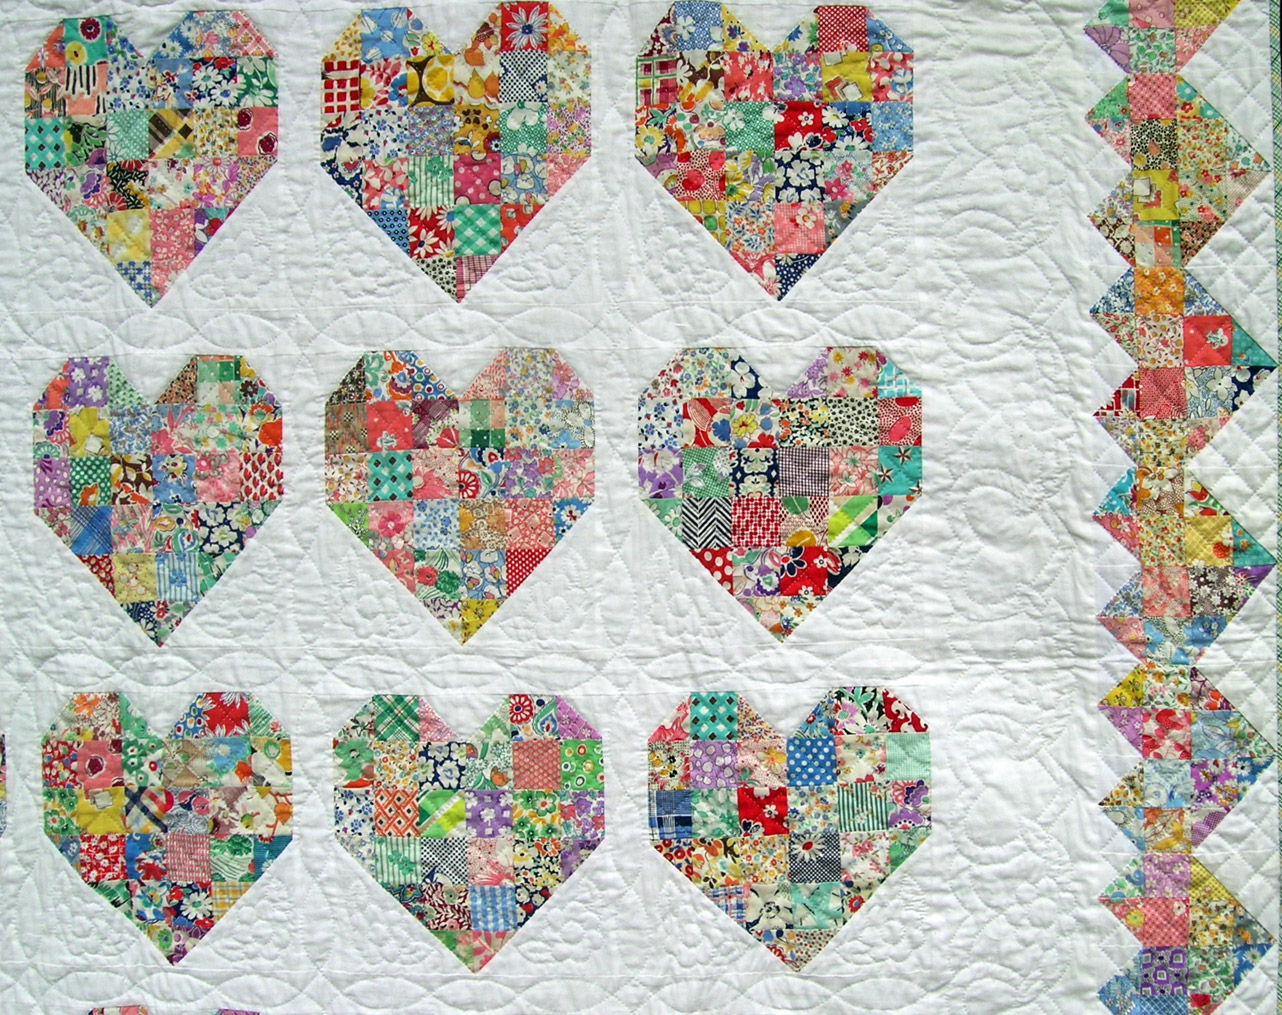 Emily S Heart Quilt Q Is For Quilter